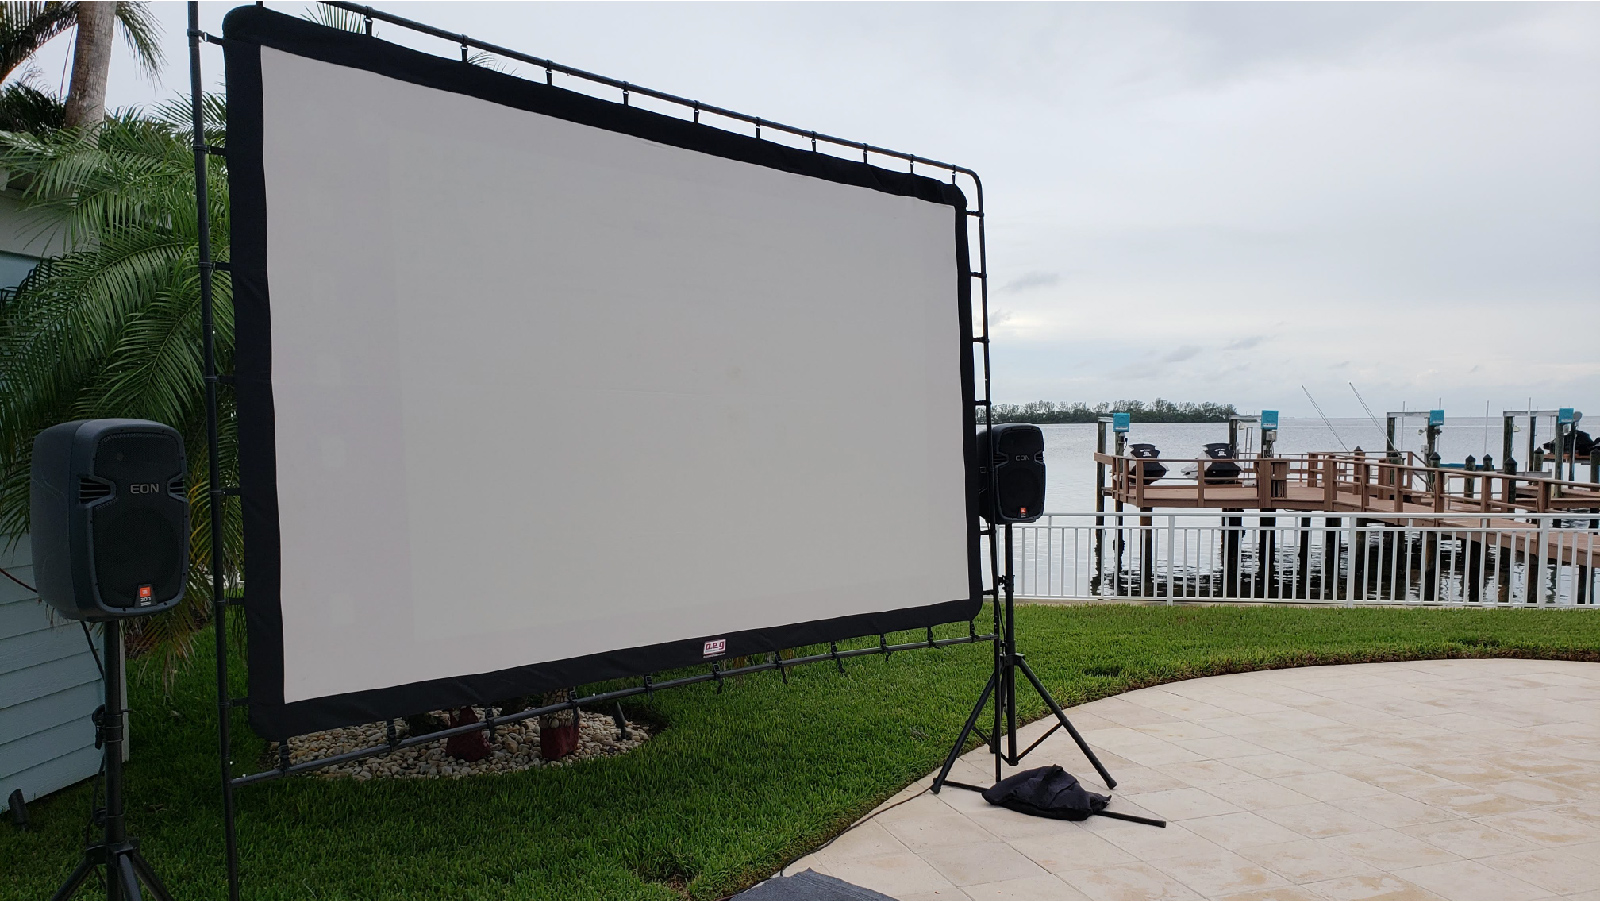 Outdoor Movie Nights - Give your movie night a movie-theater feel & go big with a large outdoor projection screen, projector & speaker rental! These setups are great for backyards or any gathering place. Visual Advantage has outdoor cinema rentals that can be setup by you or you can have one of our techs come out & do all the hard work for you! Find out more by clicking here.